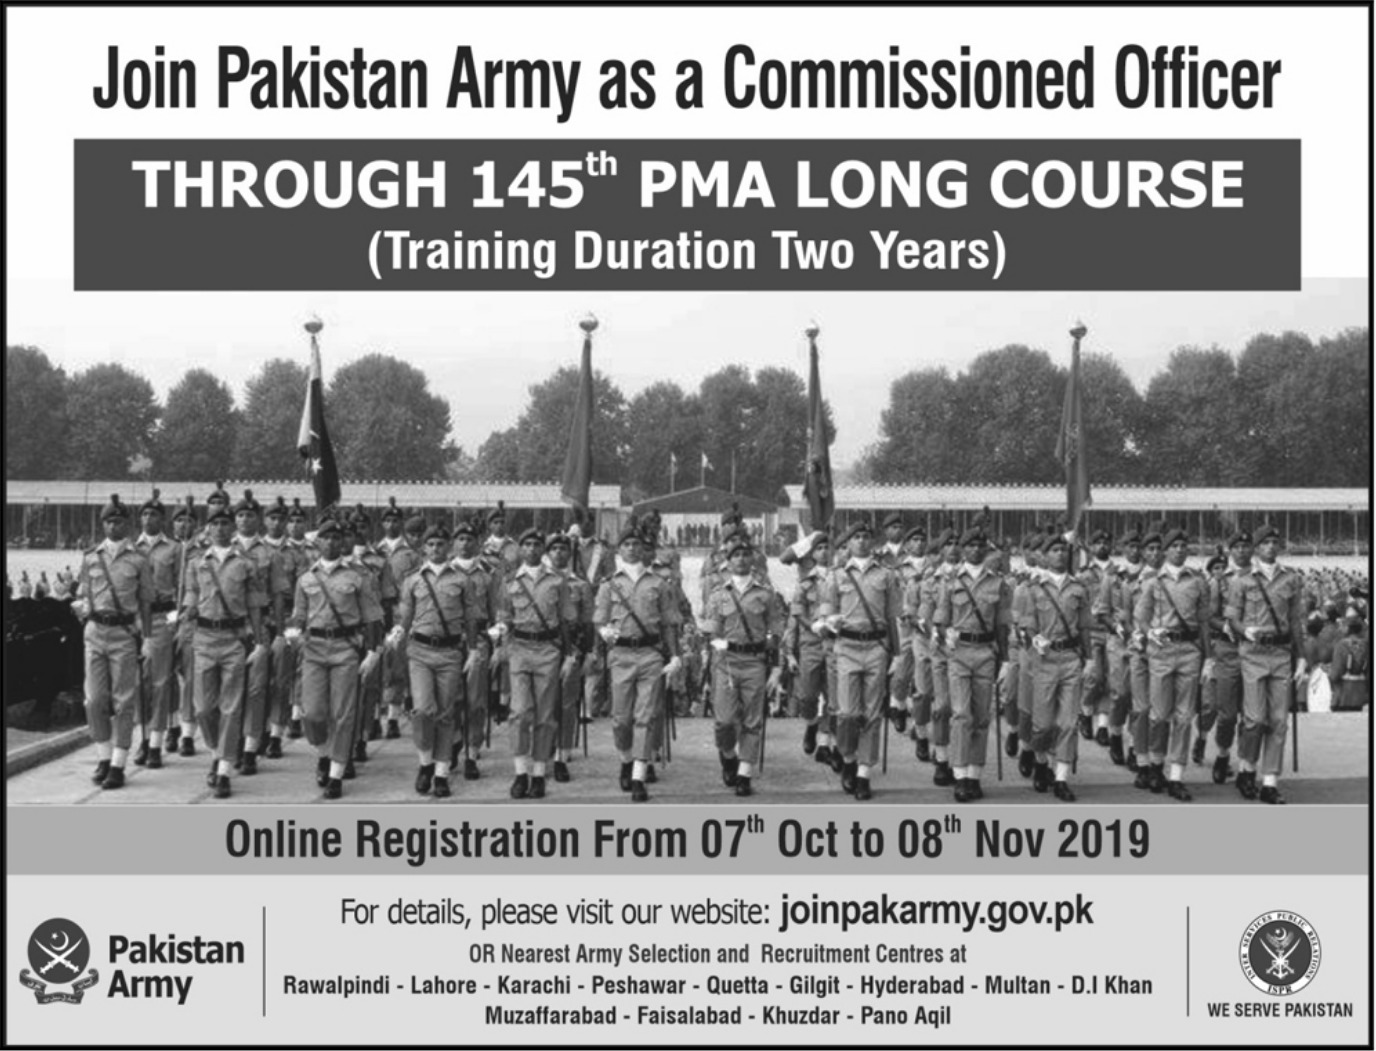 Join Pakistan Army as a Commissioned Officer 2019